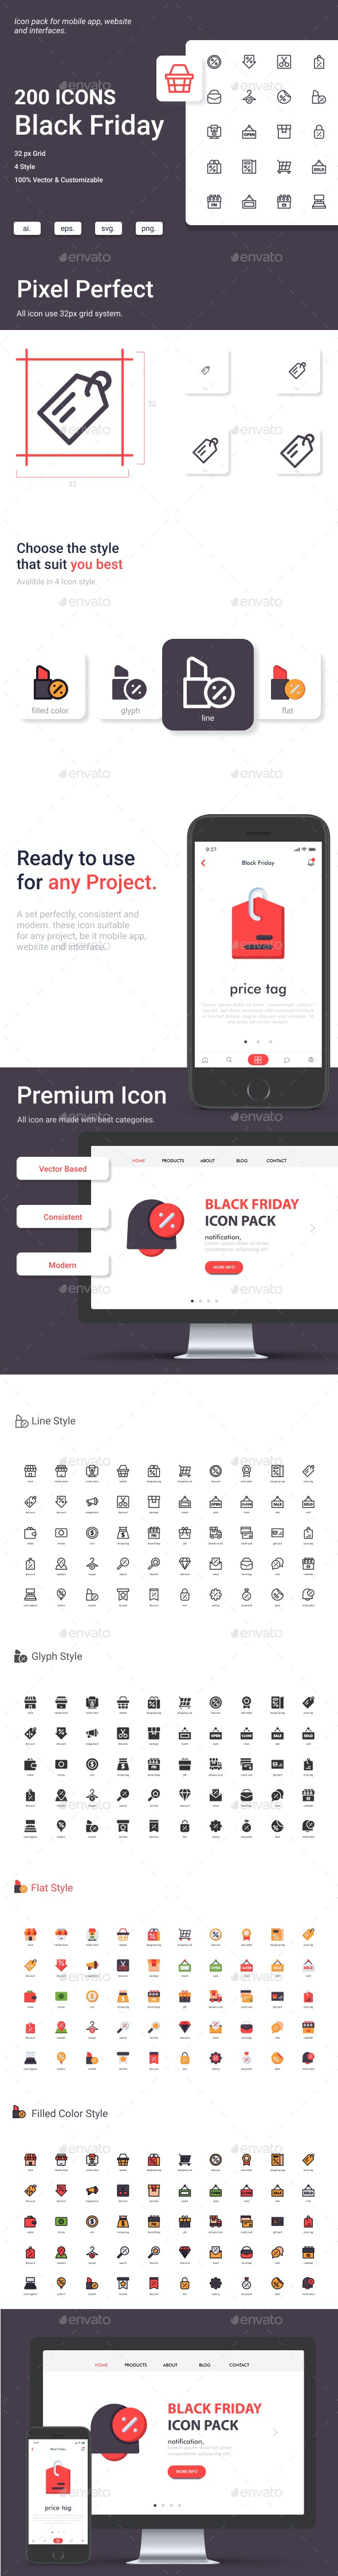 Black Friday Icon Set - Business Icons